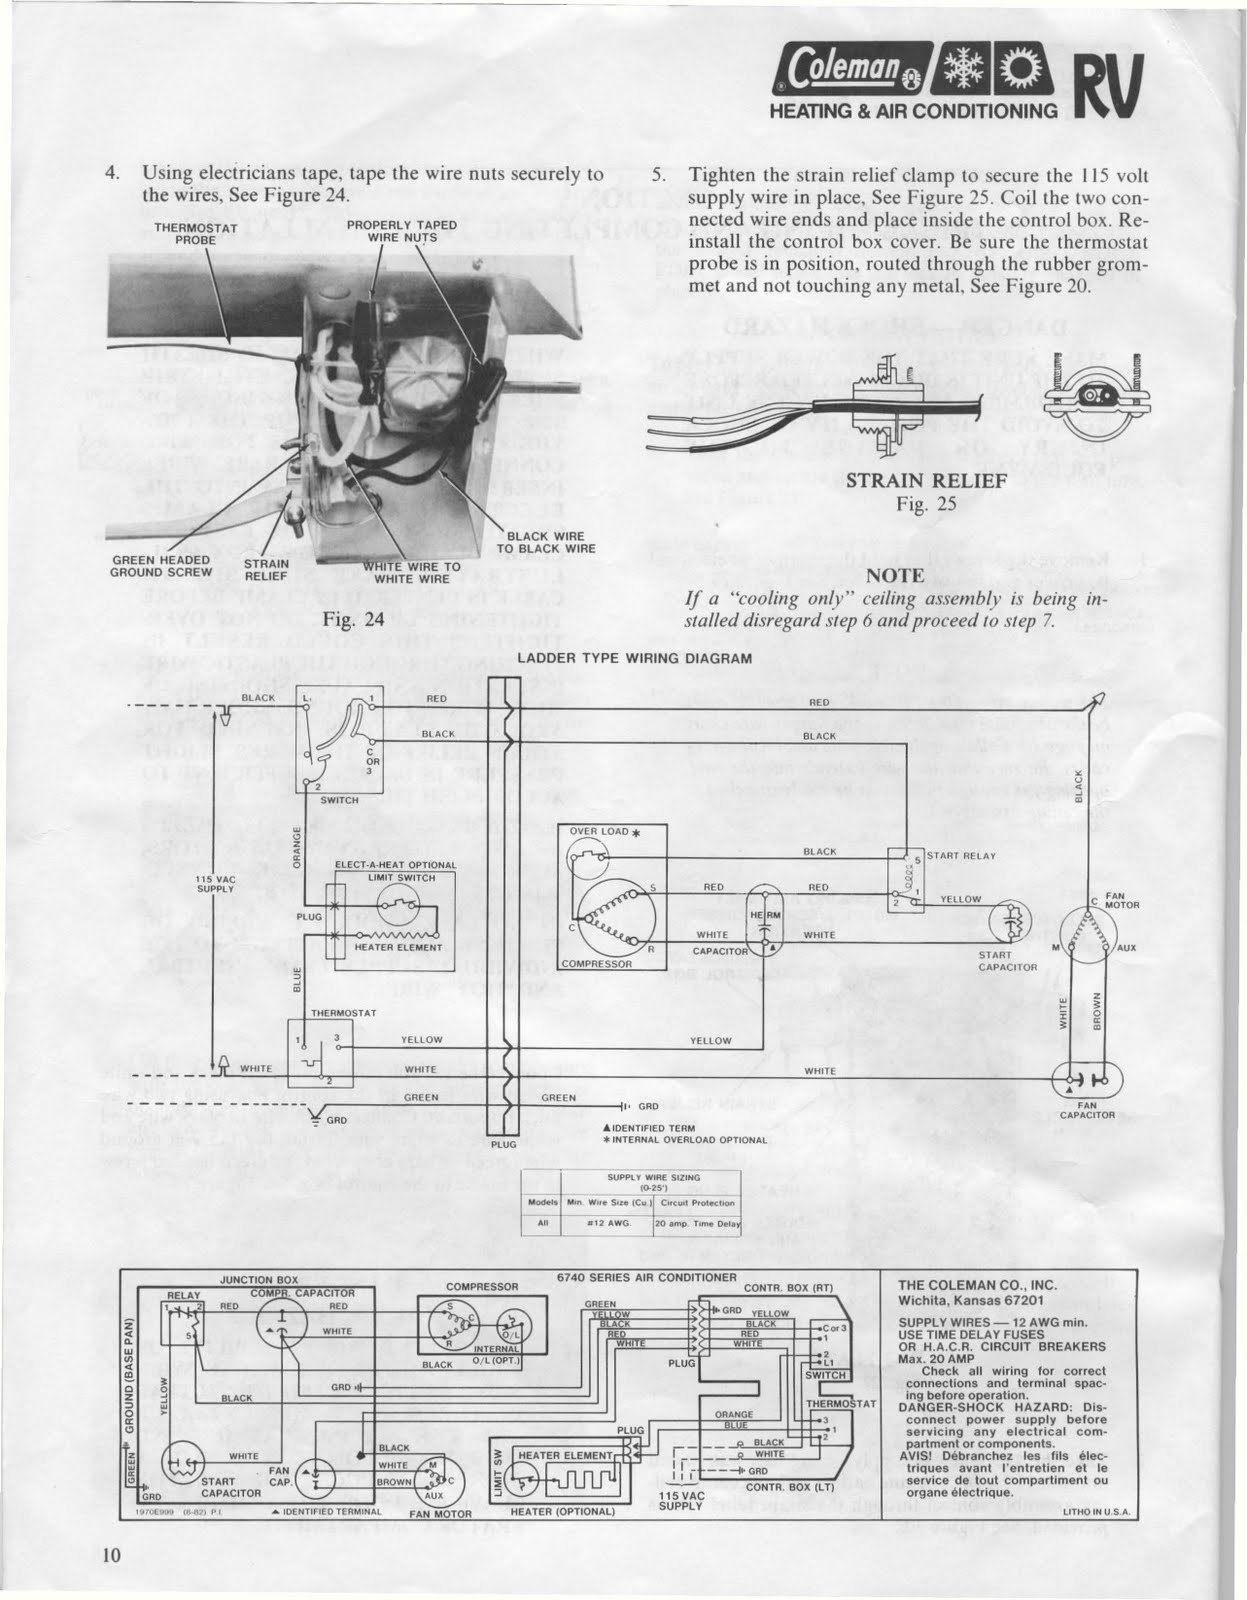 coleman rv air conditioner wiring diagram sony cdx gt71w 1983 fleetwood pace arrow owners manuals